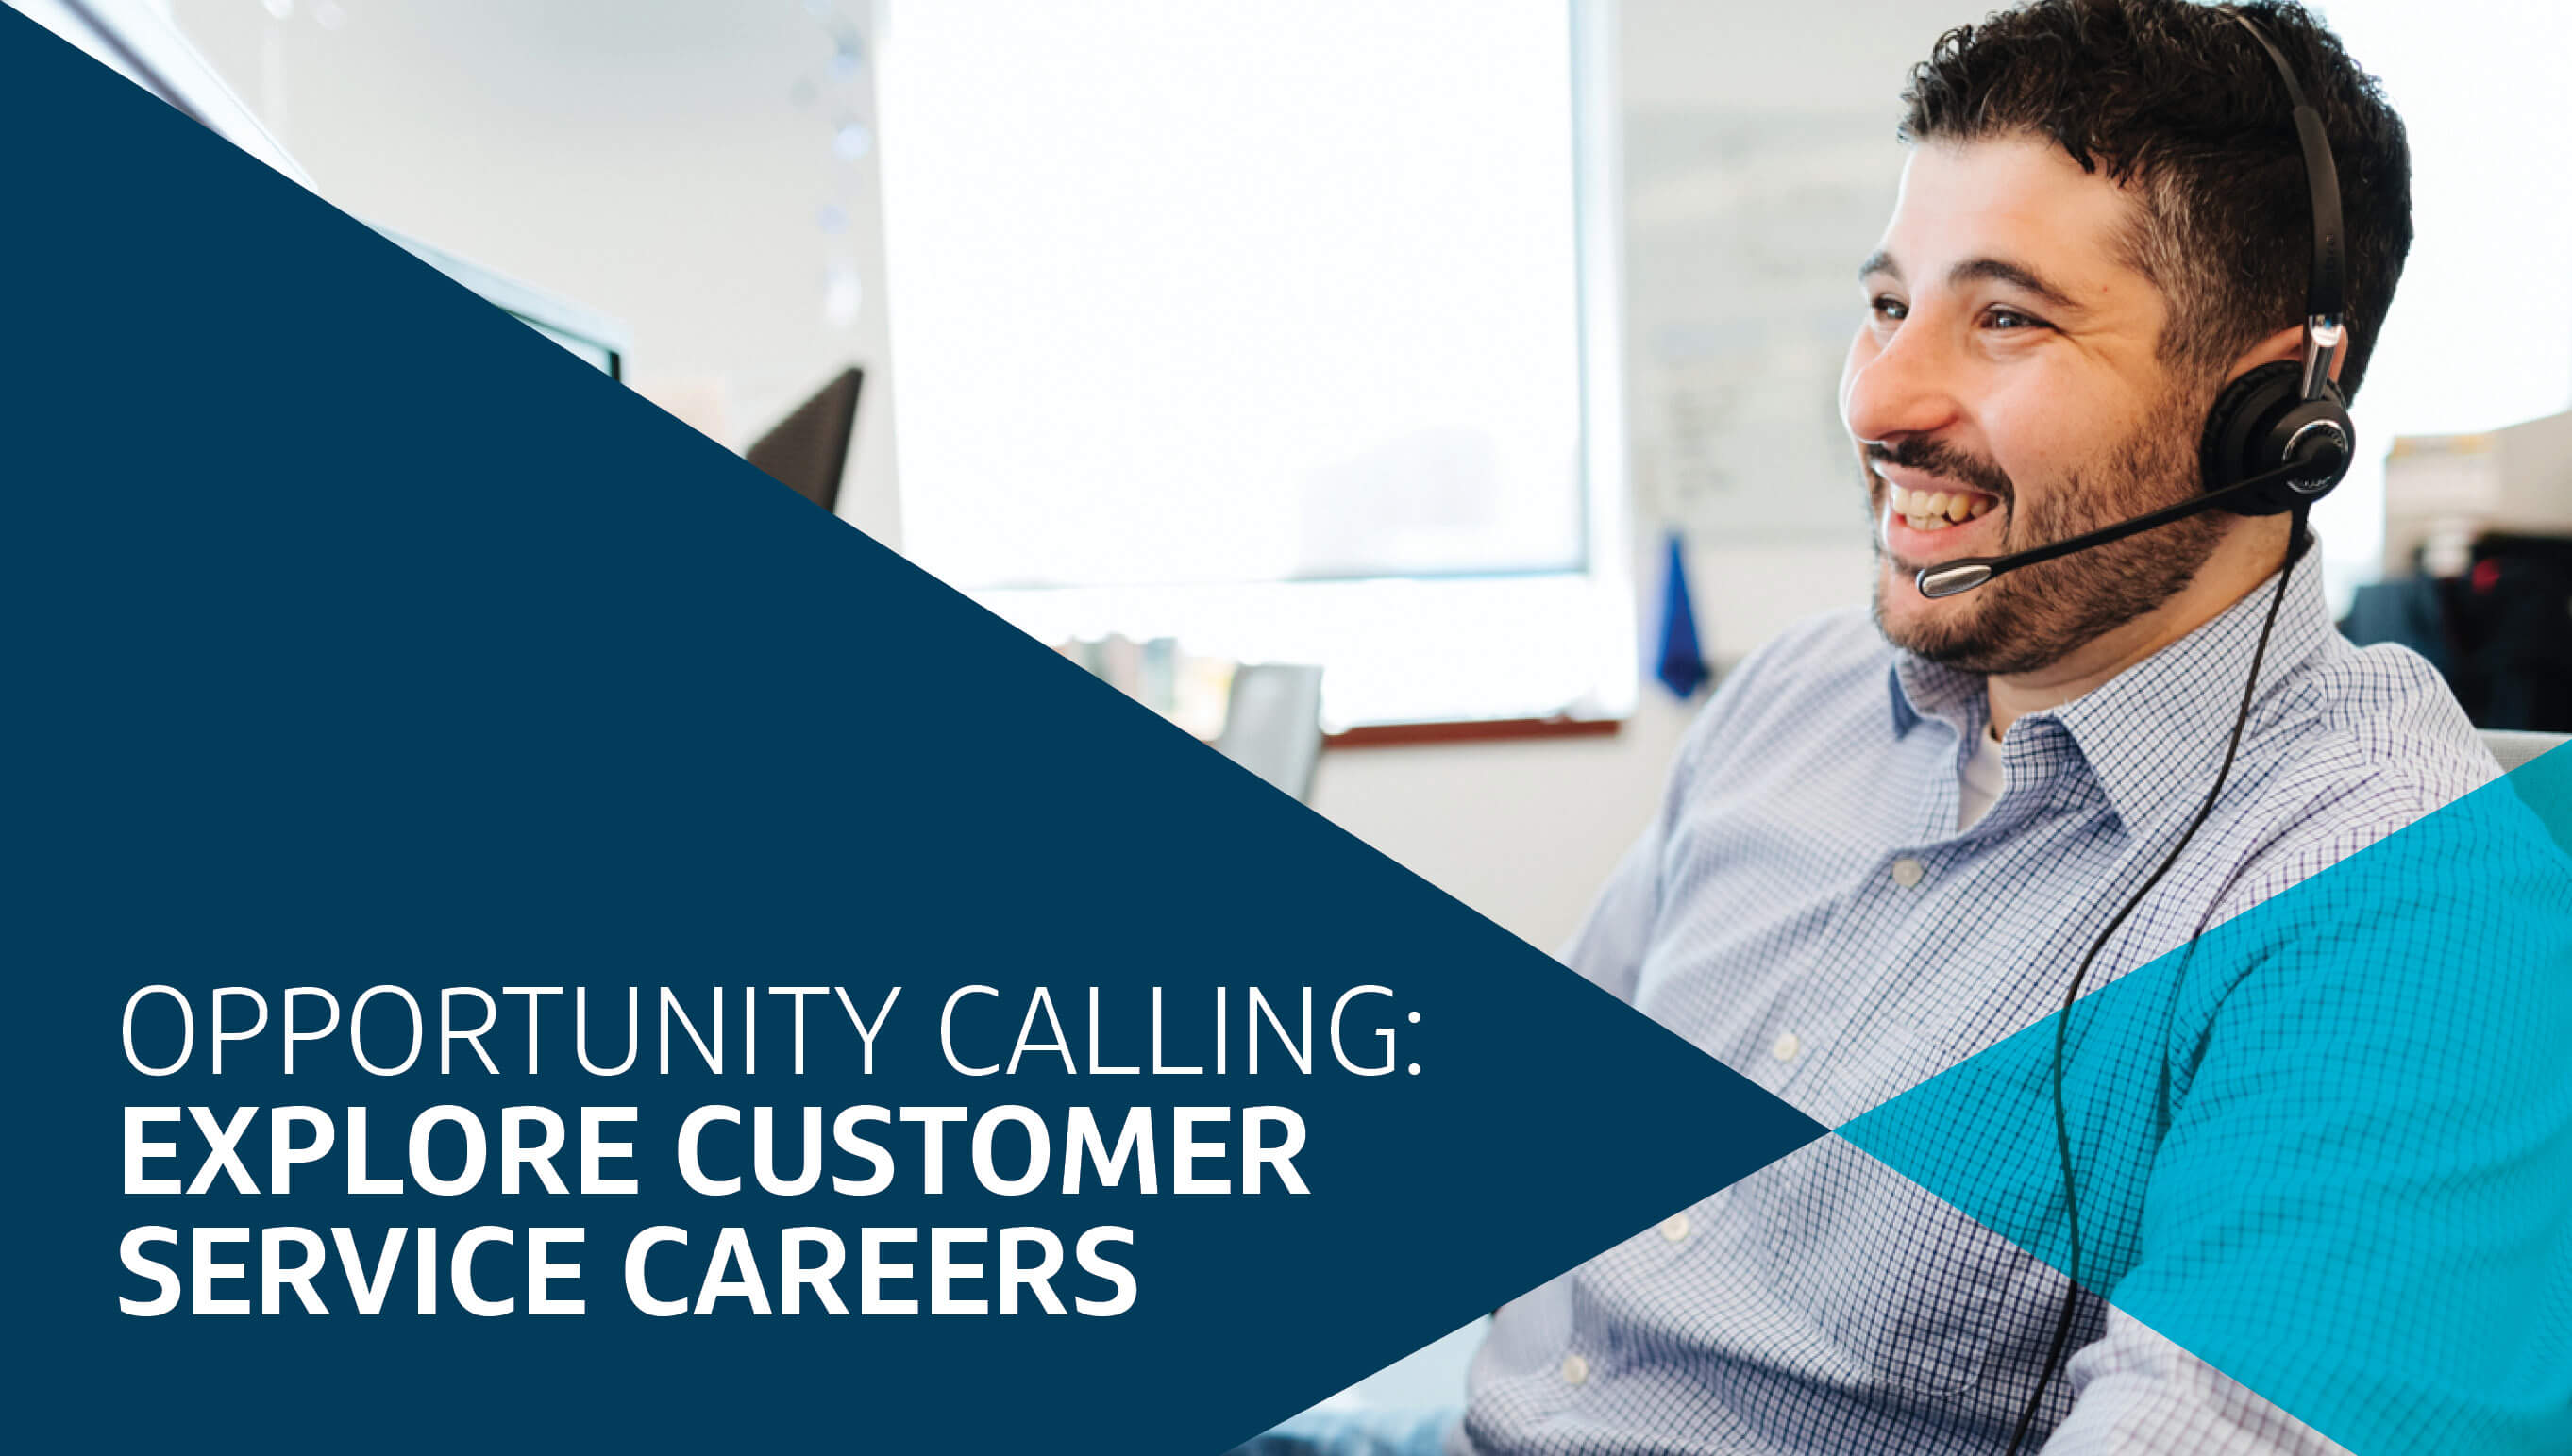 Opportunity calling: Explore customer service careers